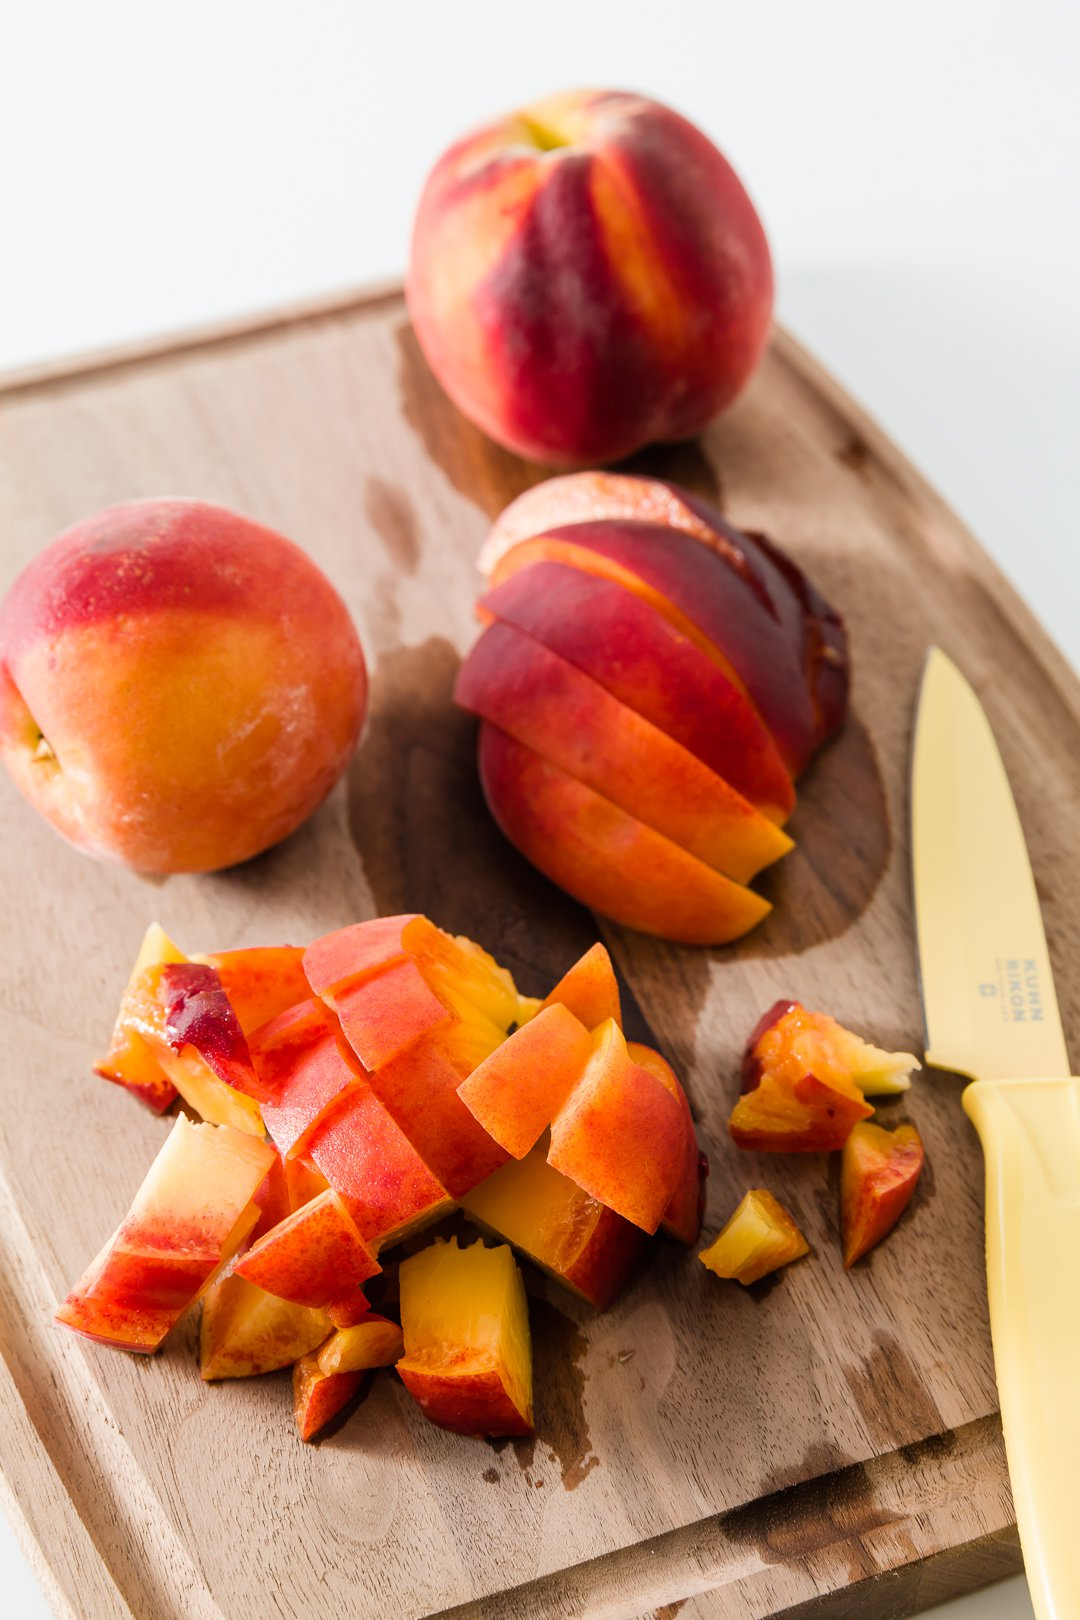 Chopped peaches on a cutting board